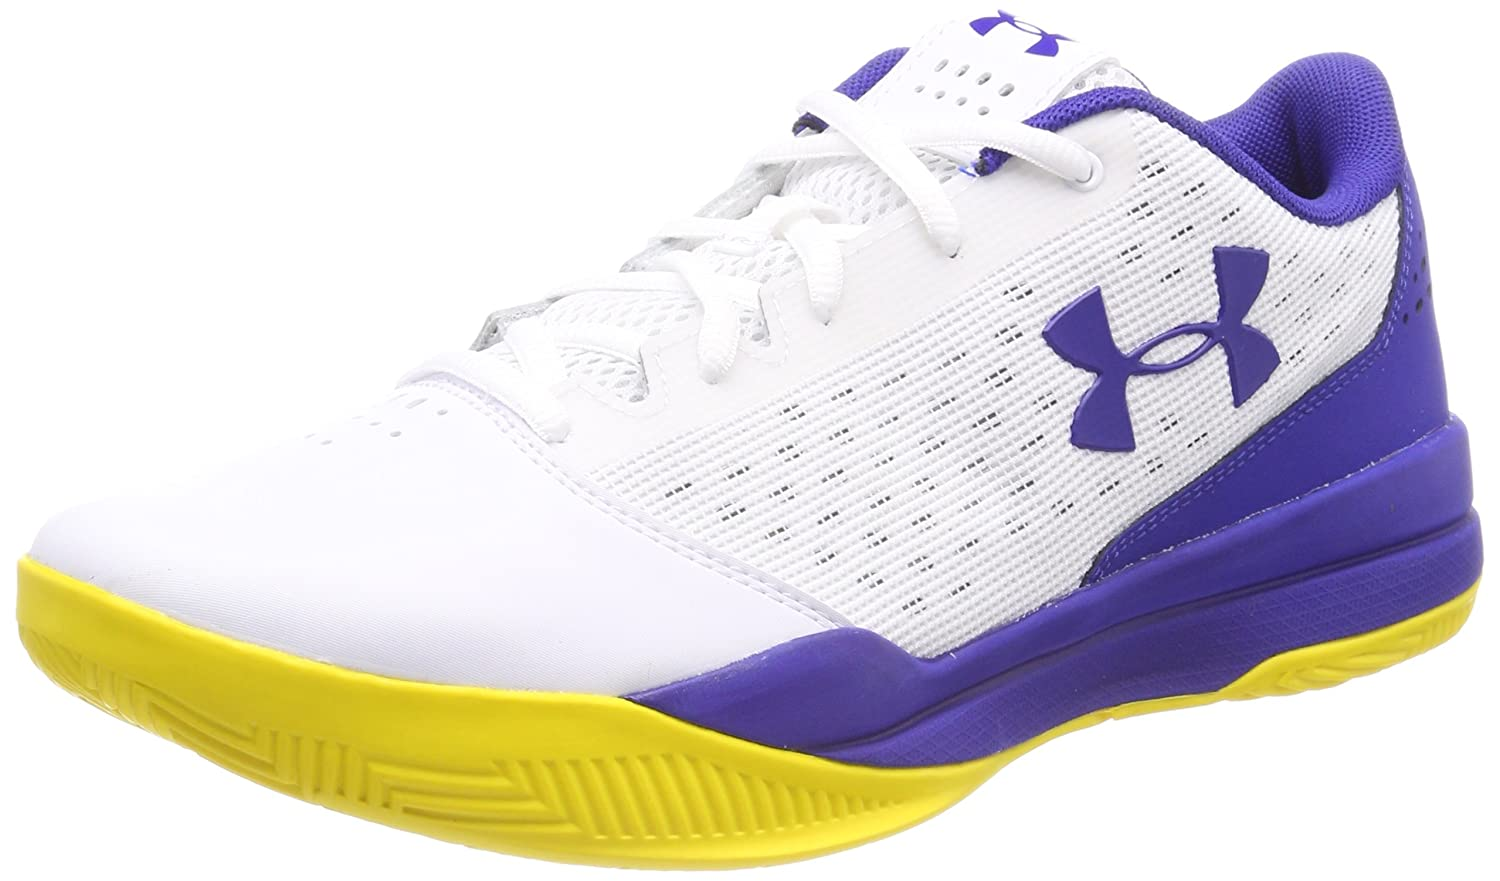 Under Armour Jet Jet Armour Low 3020254-002, Baskets Homme 40.5 EU|Blanc (White) 61581e